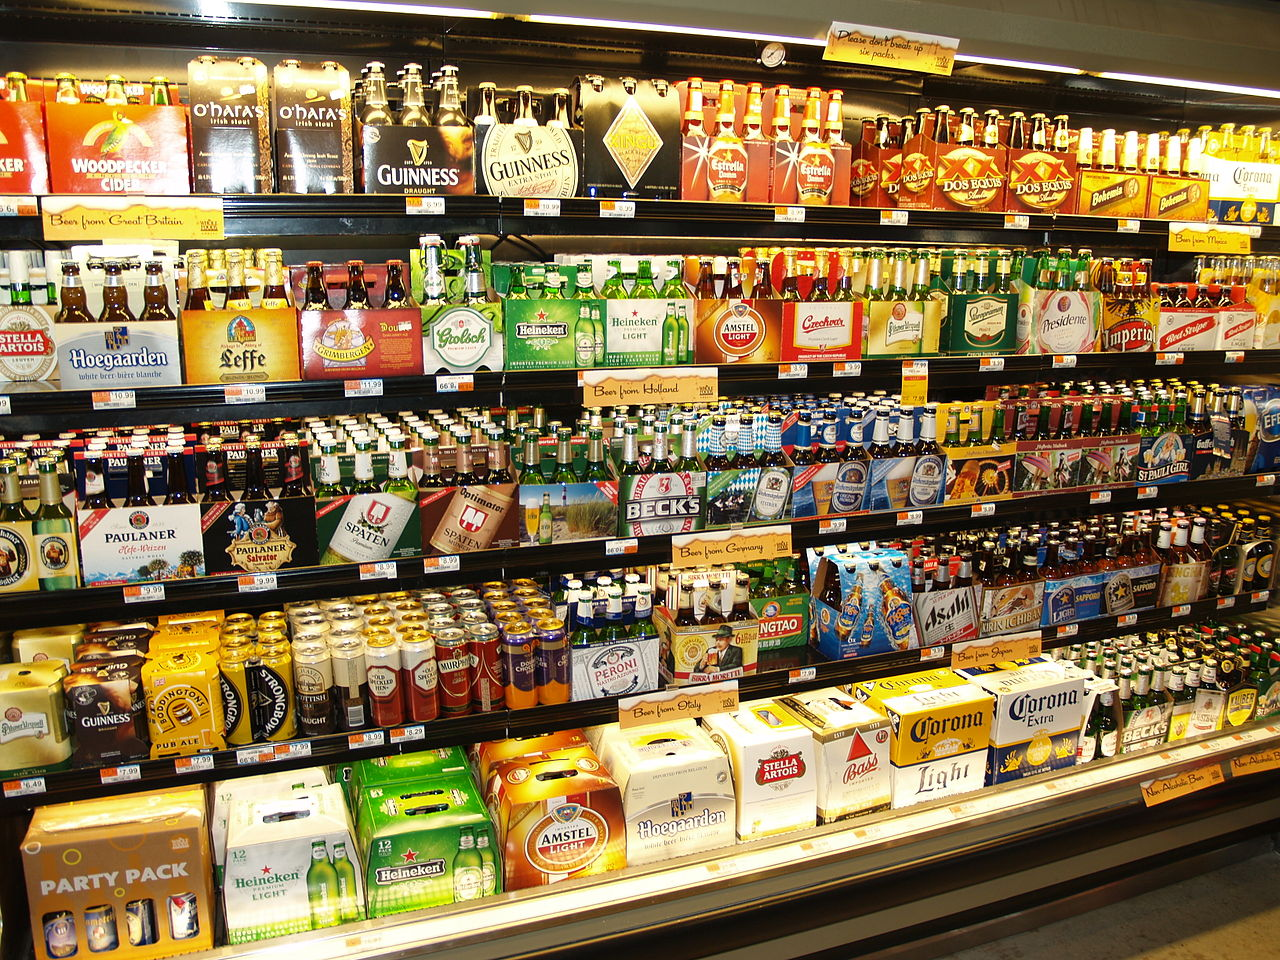 Challenging Times Ahead for Mainstream Beer Distributors - POS Marketing